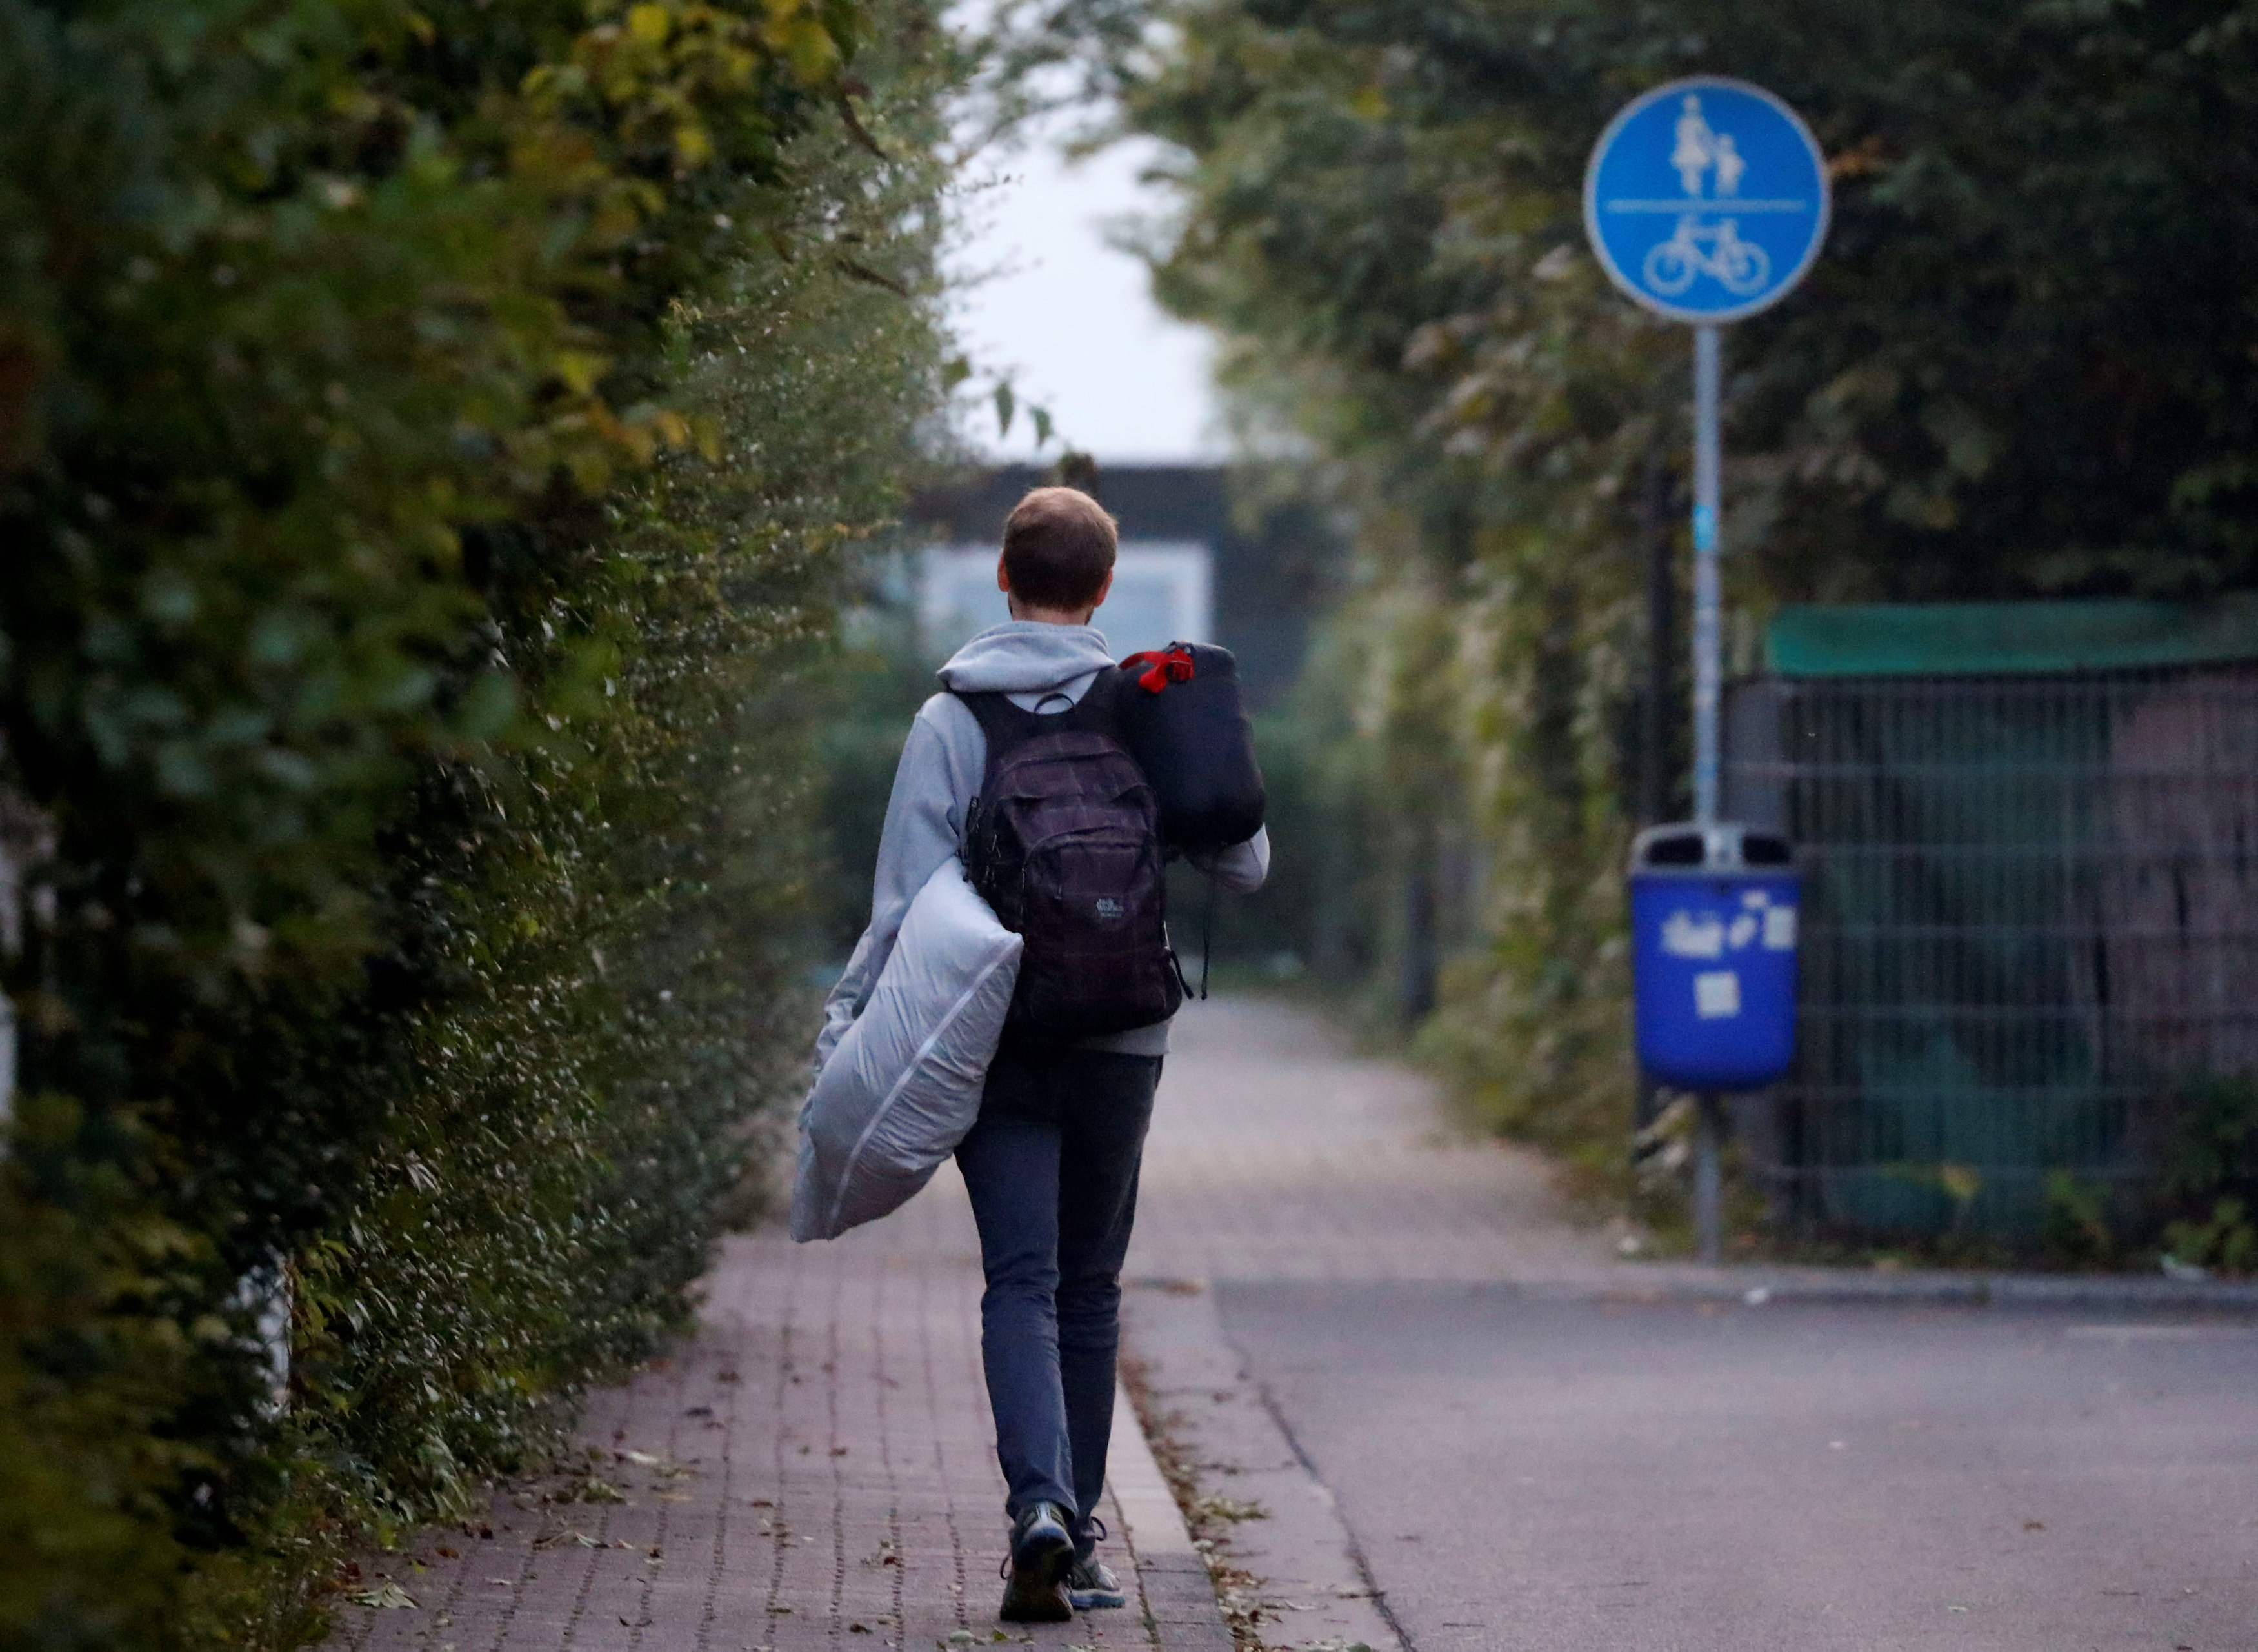 A young man carries his pillow and a sleeping bag as some 60,000 people in Germany's financial capital are about to evacuate the city while experts defuse an unexploded British World War Two bomb found during renovations on the university's campus in Frankfurt, Germany on Sept. 3, 2017.  (REUTERS/Kai Pfaffenbach)